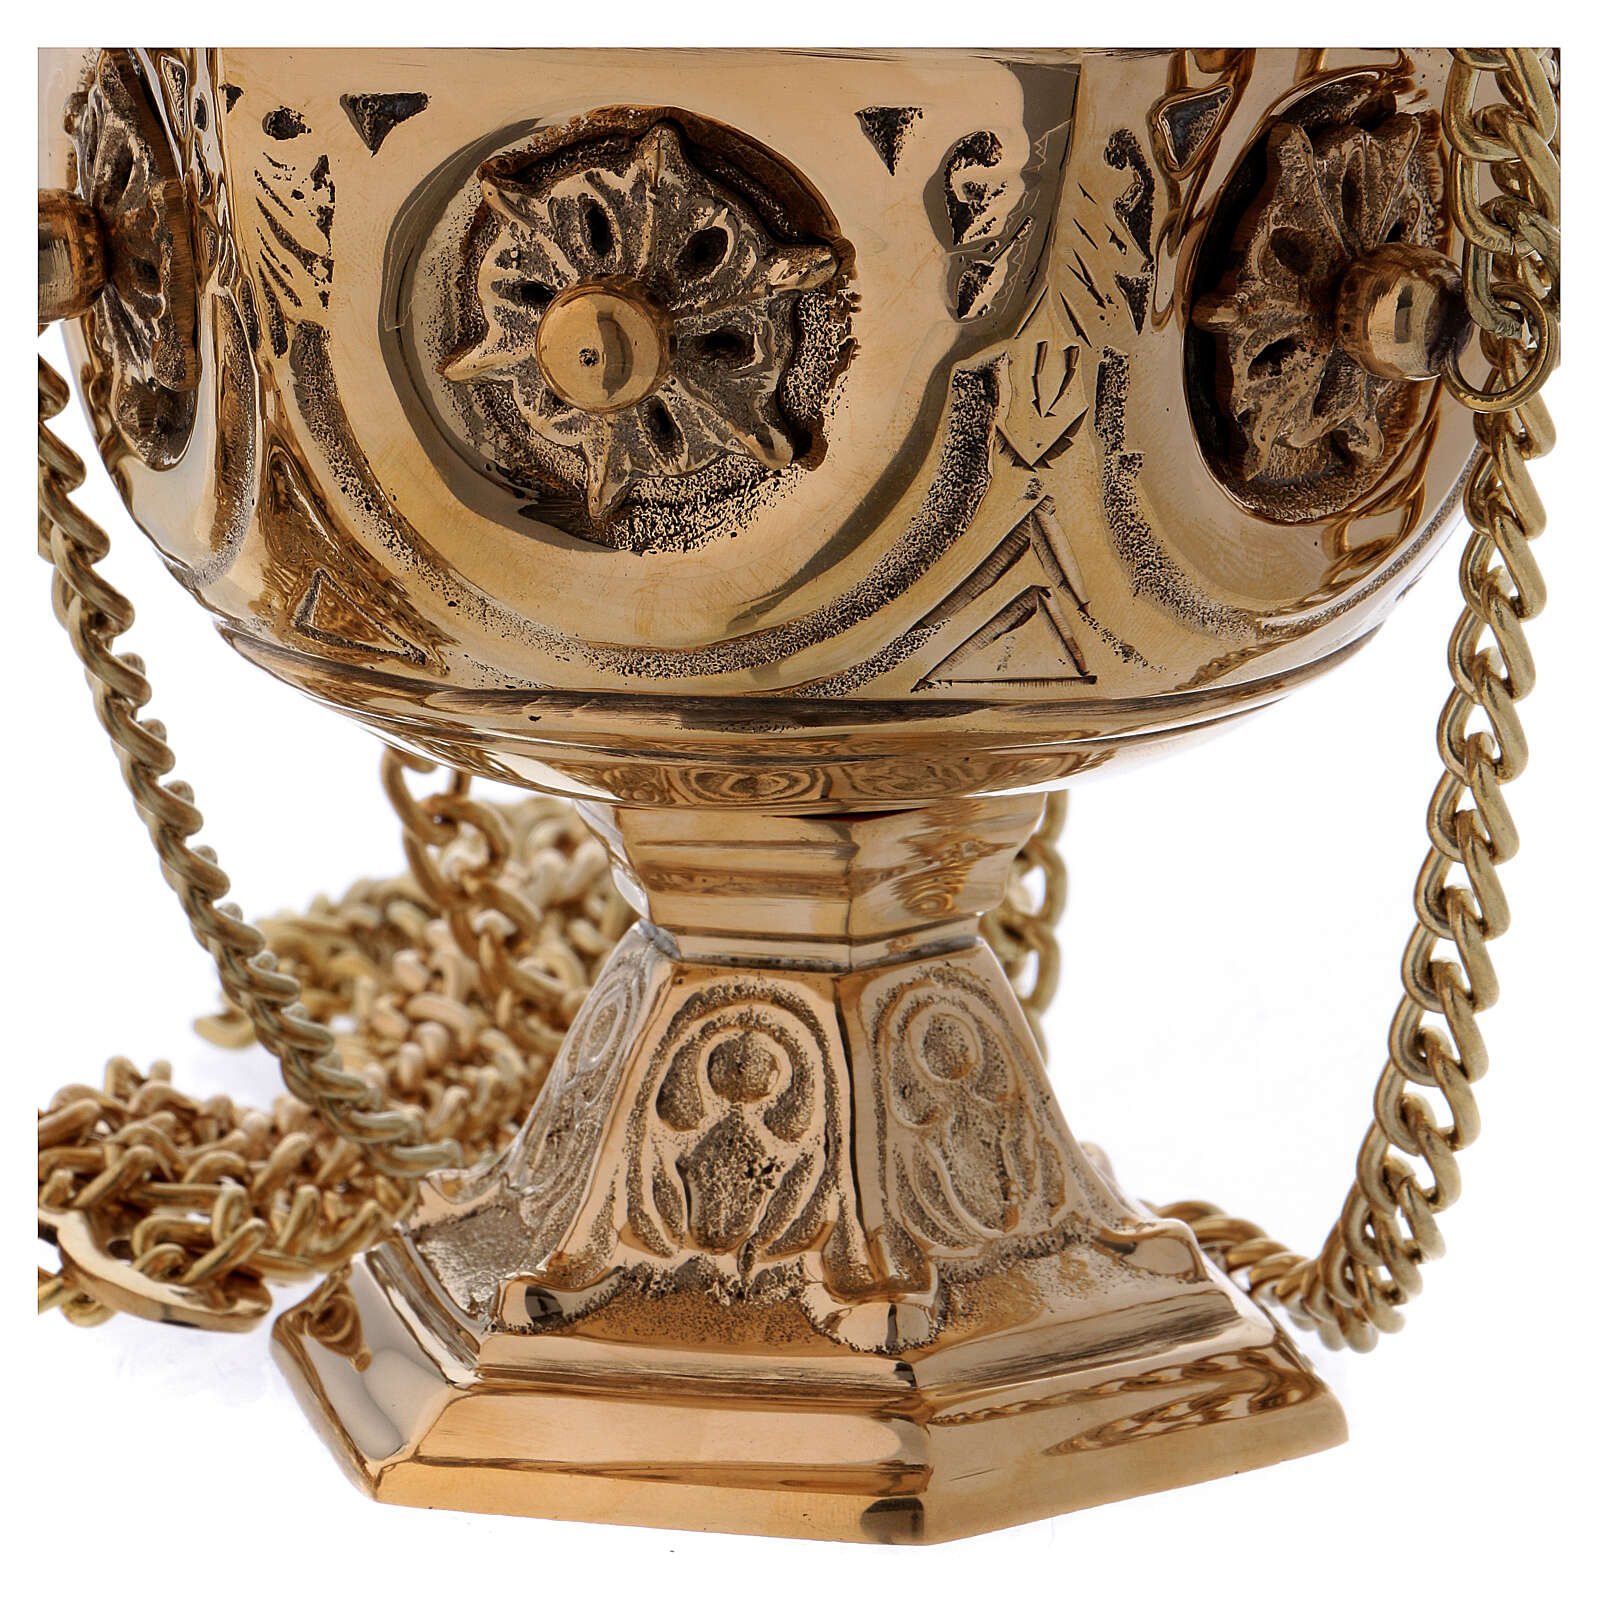 Leaf pattern thurible in gold-colored brass h 10 1/2 in 3